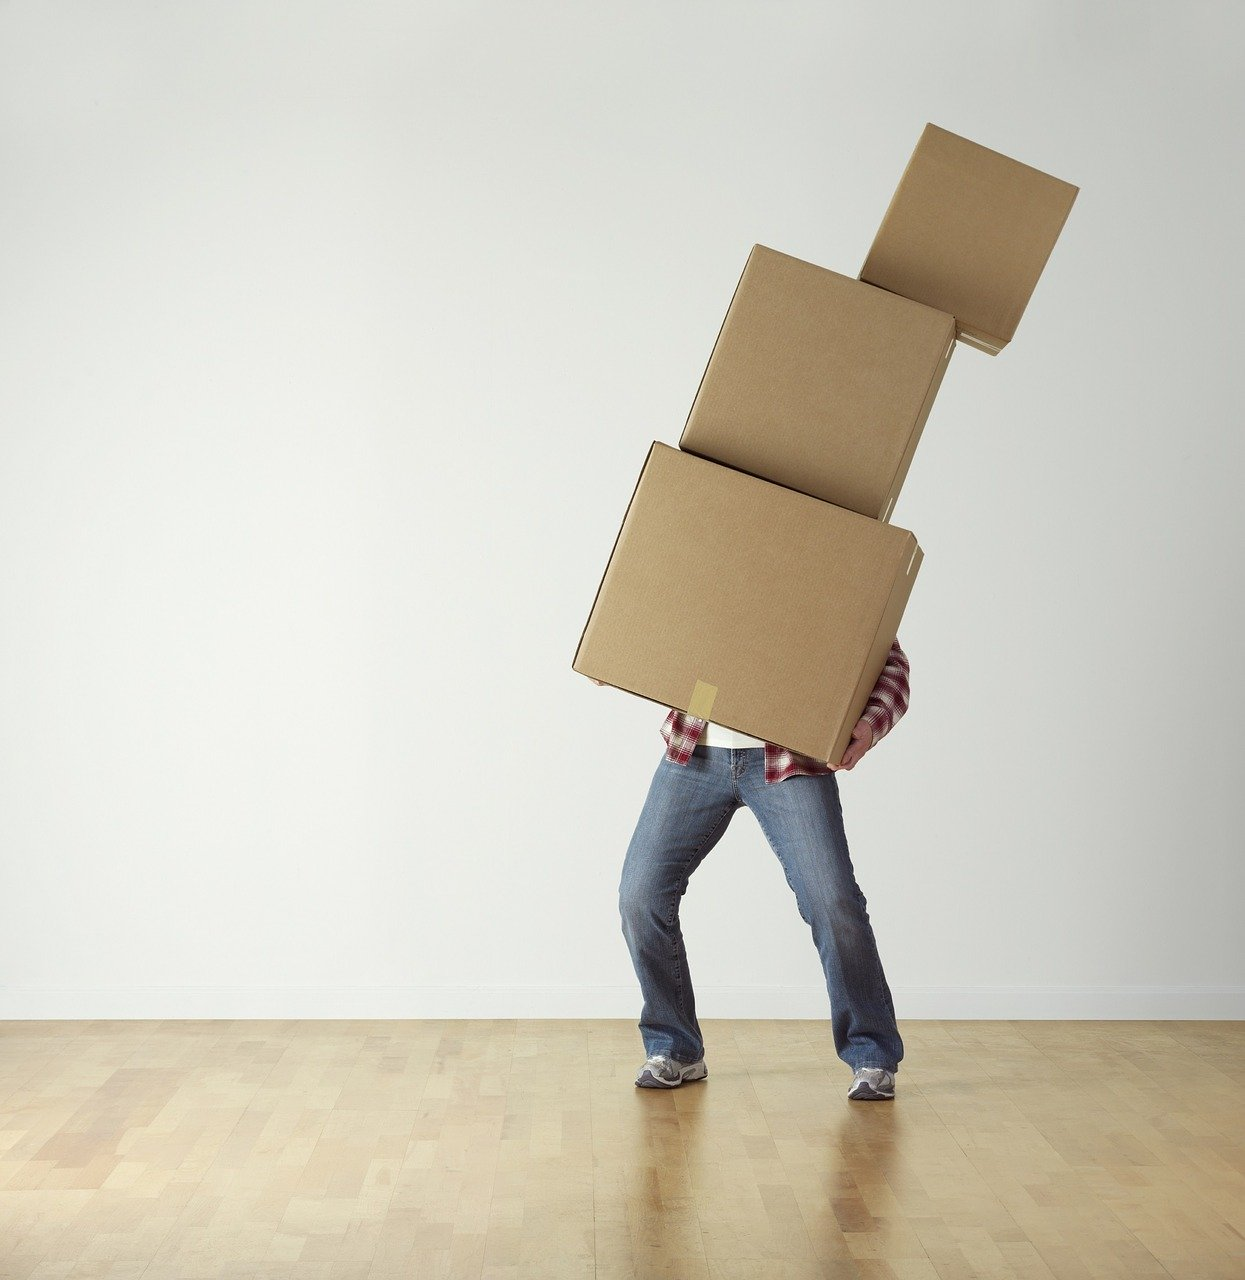 a person holding and trying to balance three moving boxes and leaning to one side